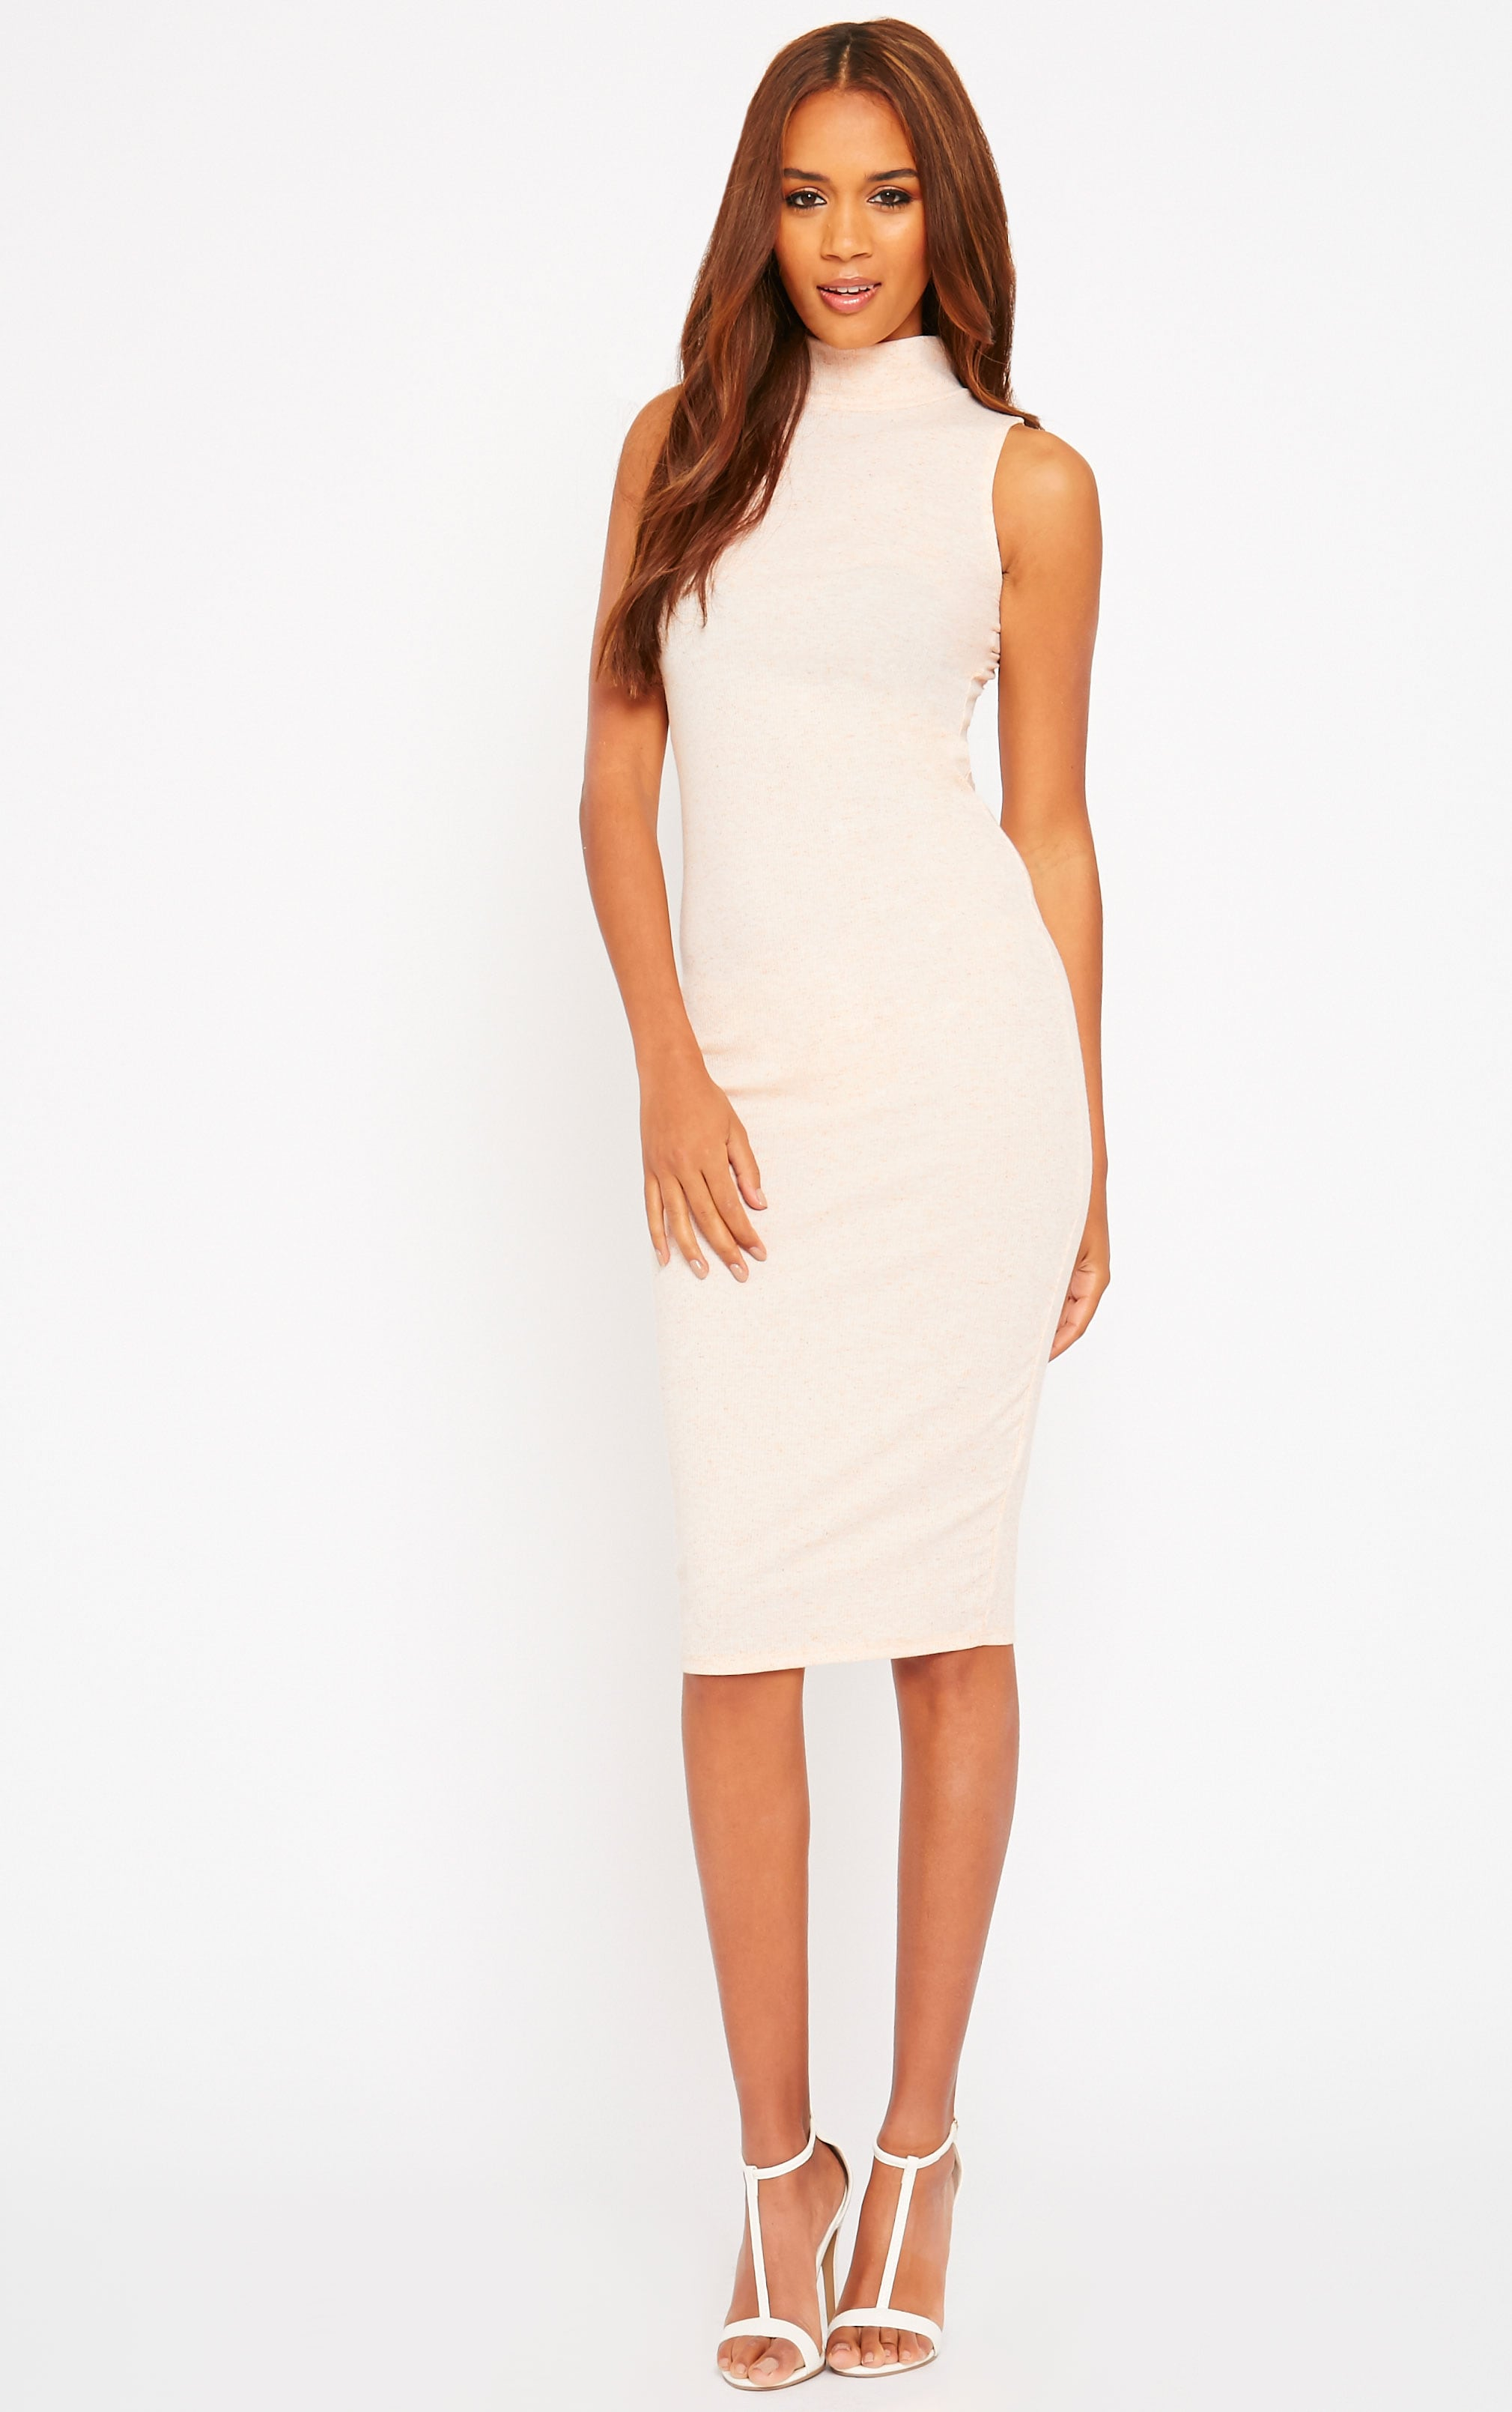 Basic Nude High Neck Dress 1